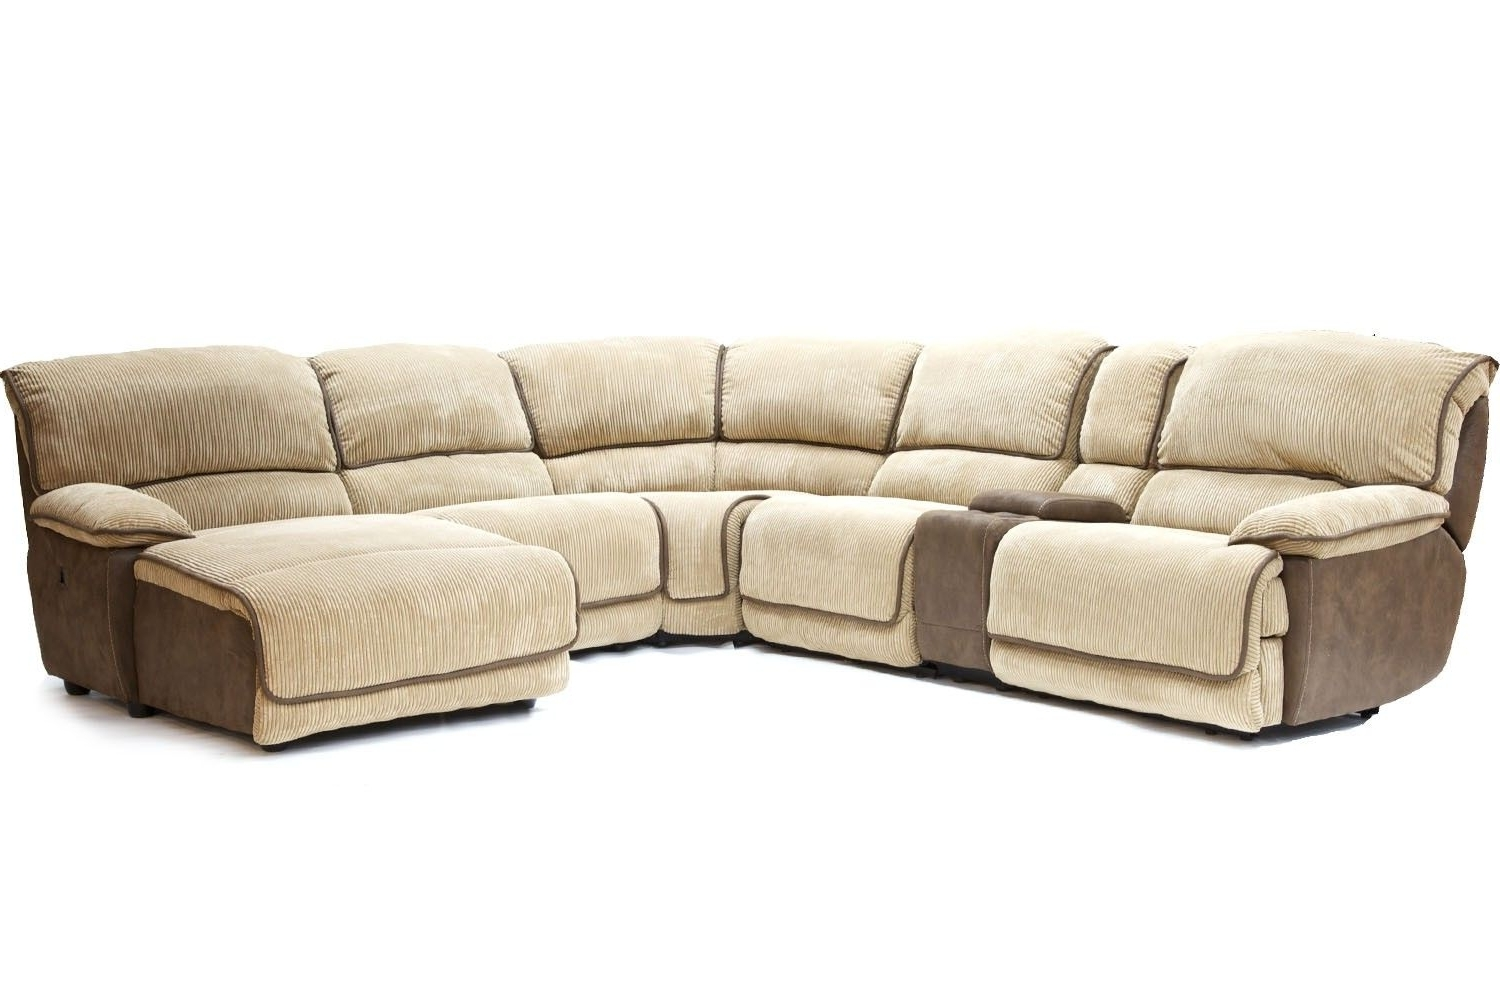 Most Up To Date Sectional Sofas At Austin In Mor Furniture For Less: The Austin Cafe Reclining Living Room (View 7 of 20)